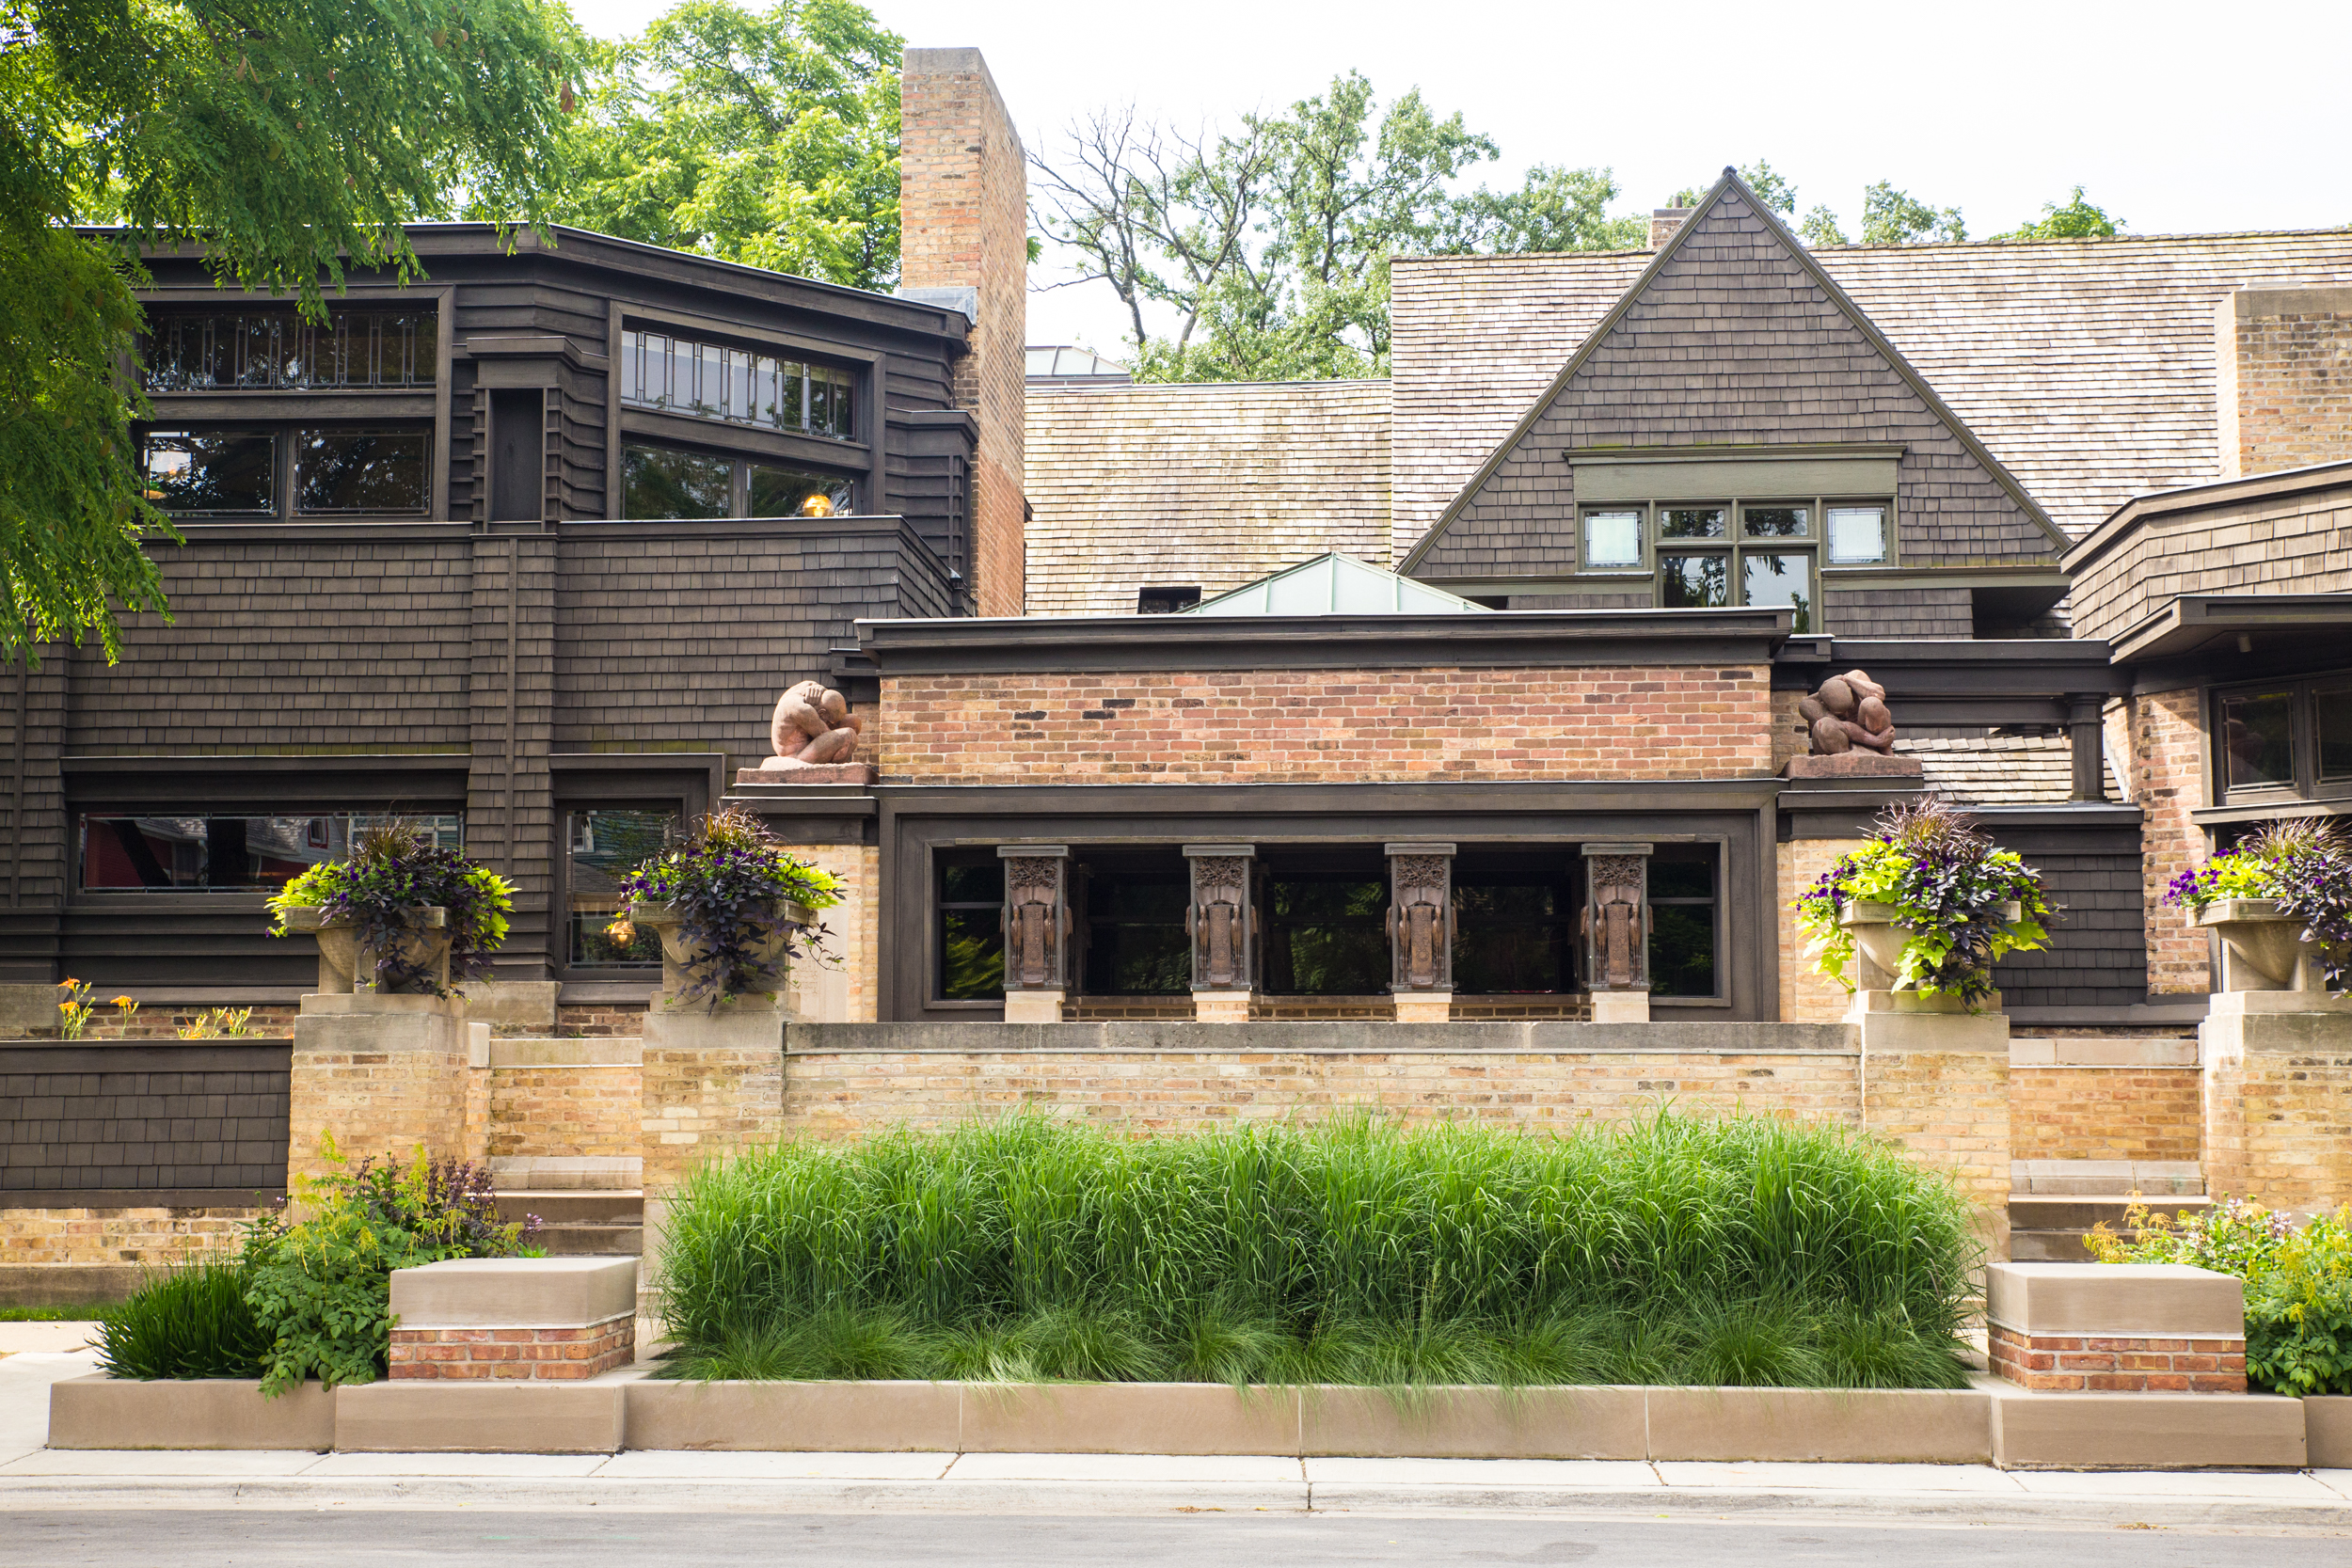 Frank Lloyd Wright Inspired Houses how to build a frank lloyd wright-inspired home — rismedia |